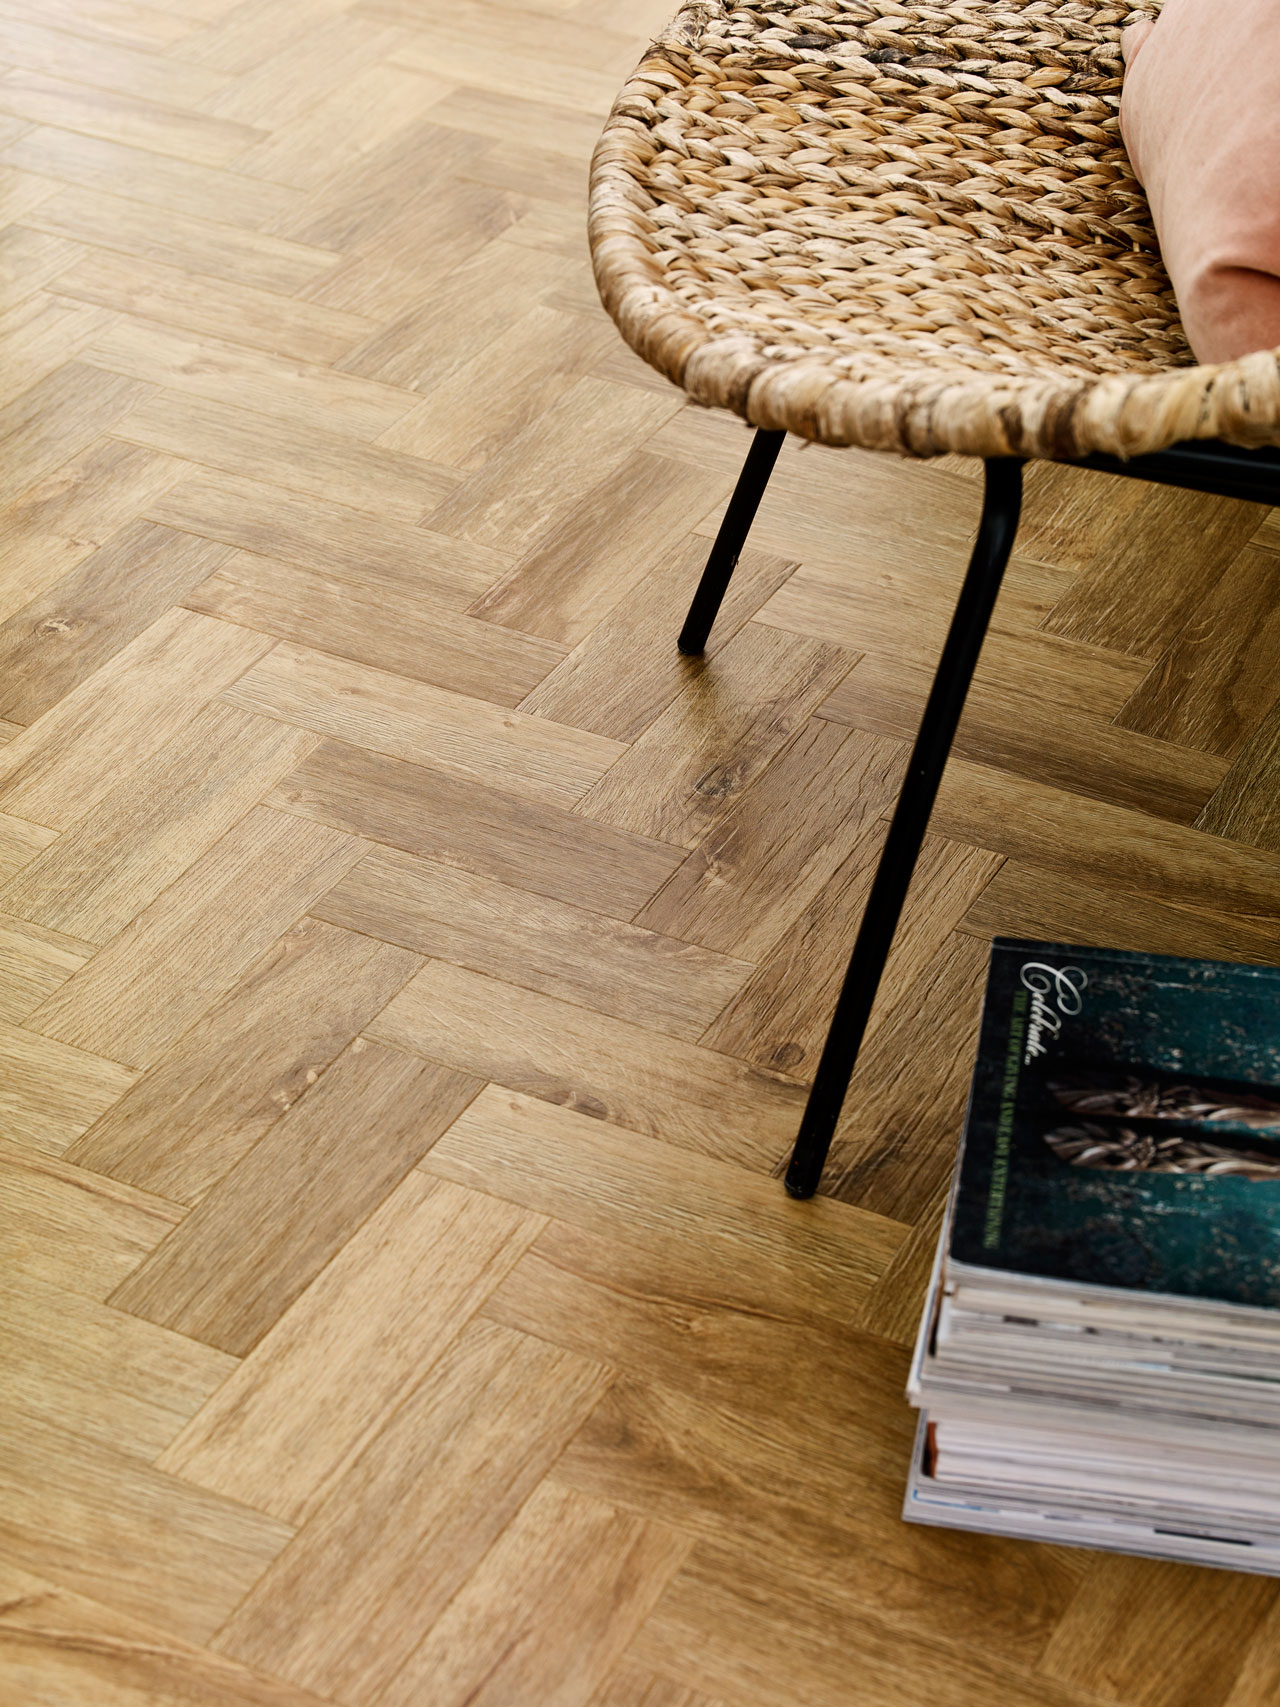 Rural Oak Beautifully Designed Lvt Wood Flooring From The